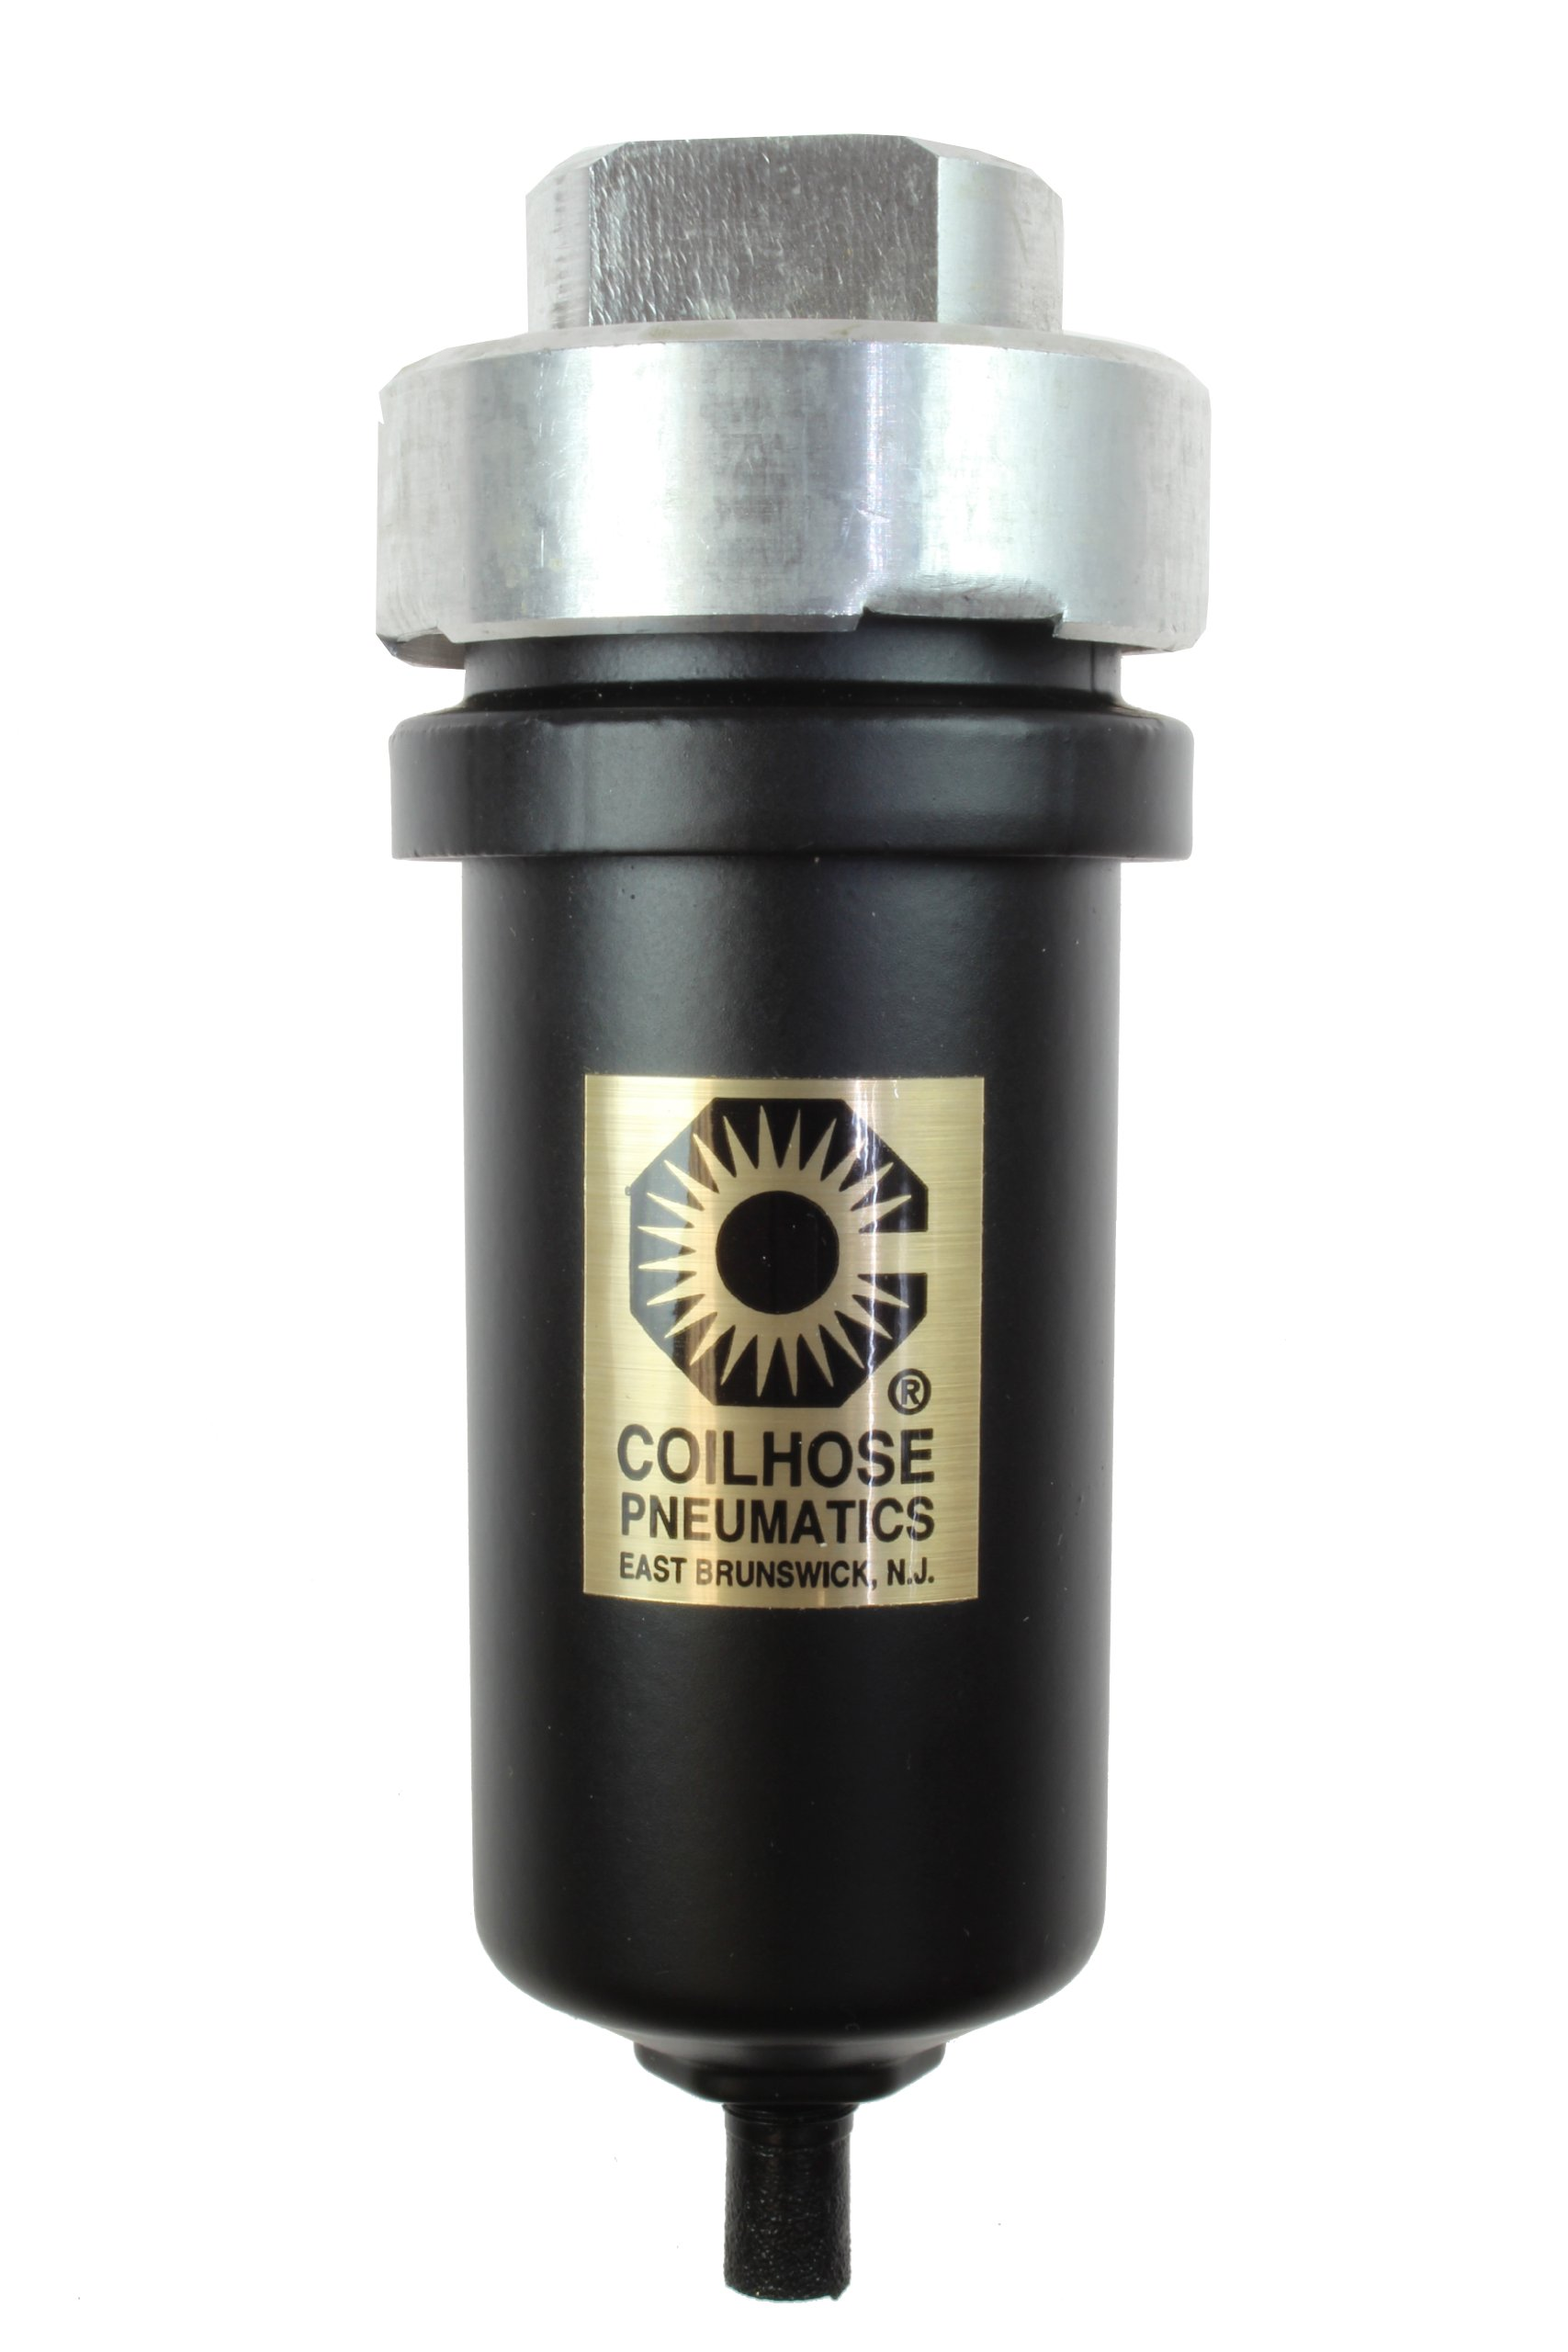 Coilhose Pneumatics 8514M Mechanical Condensate Drain with Metal Bowl, 1/2-Inch FPT